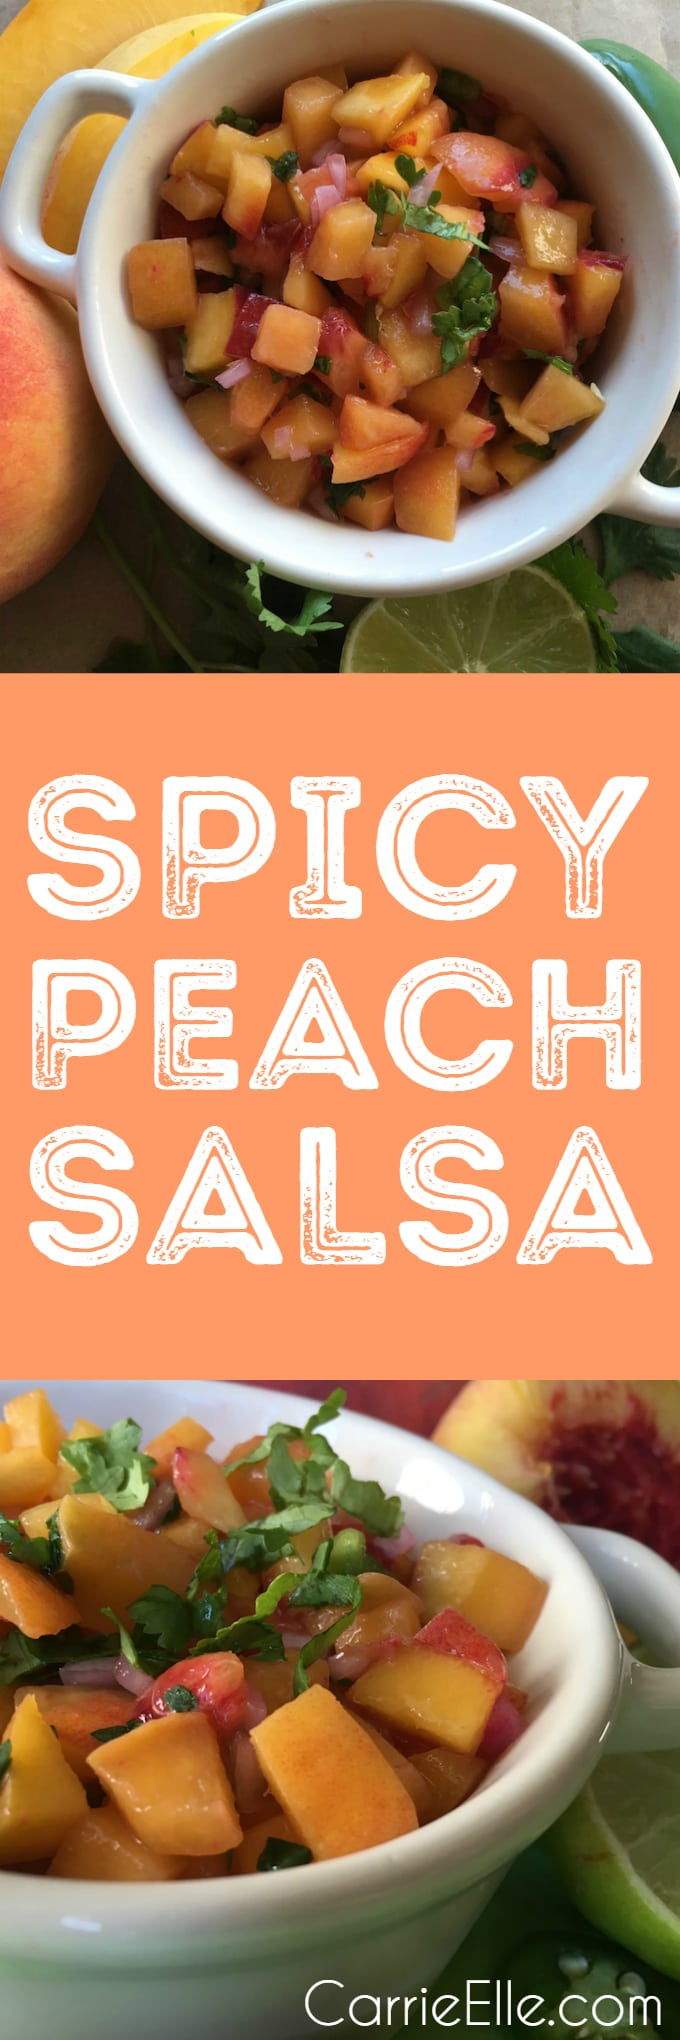 Spicy Peach Salsa Recipe